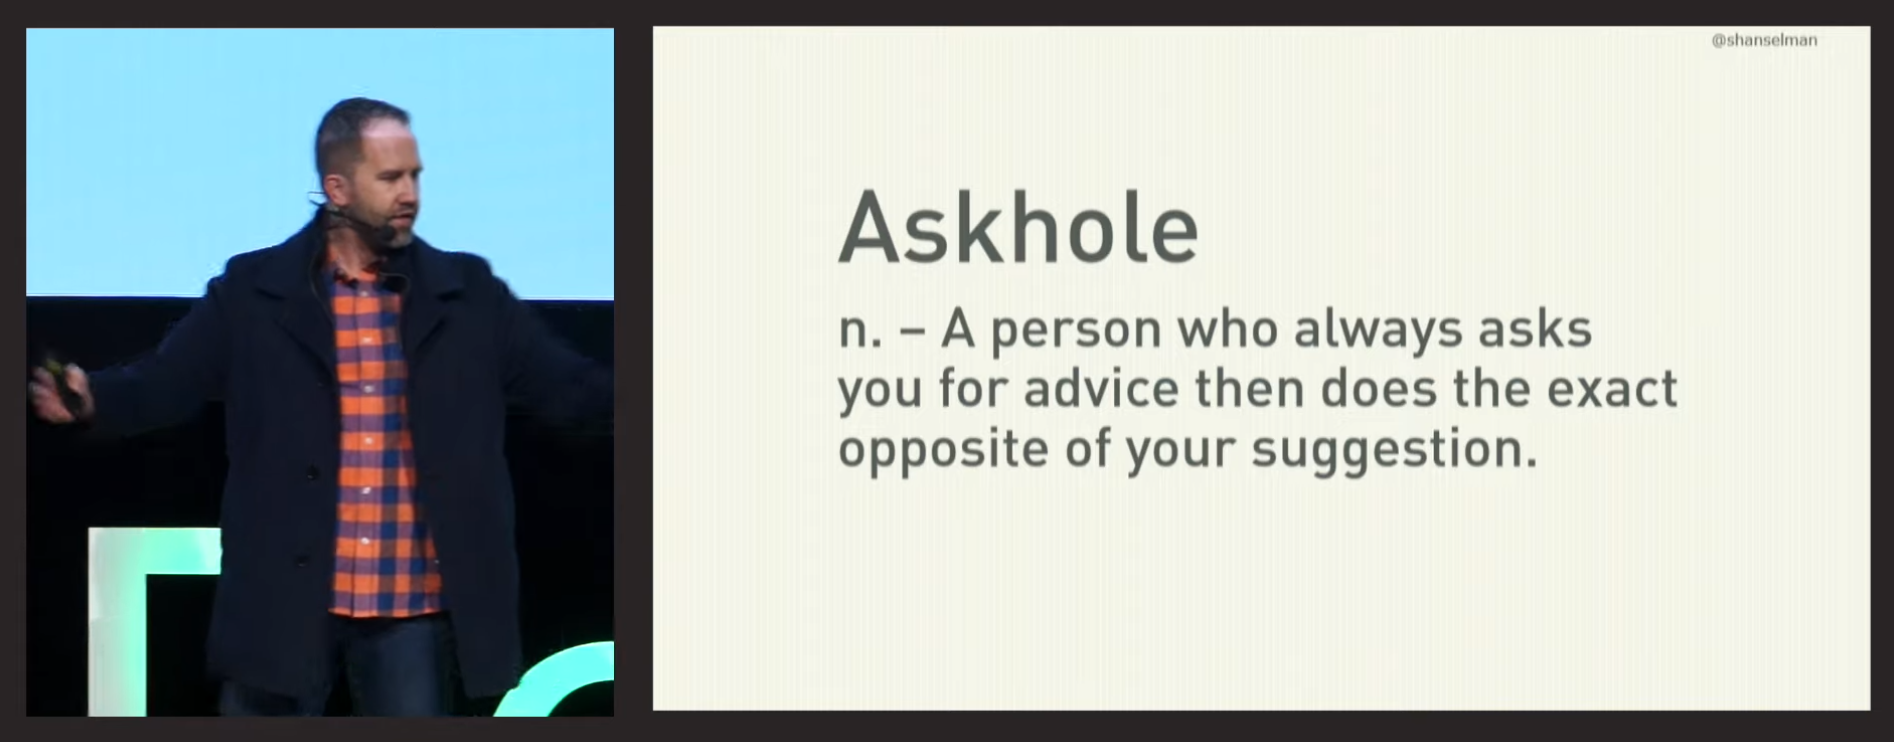 Scott Handelmann on stage with the definition of an askhole: A person who always asks you for advice and then does the opposite of your suggestion